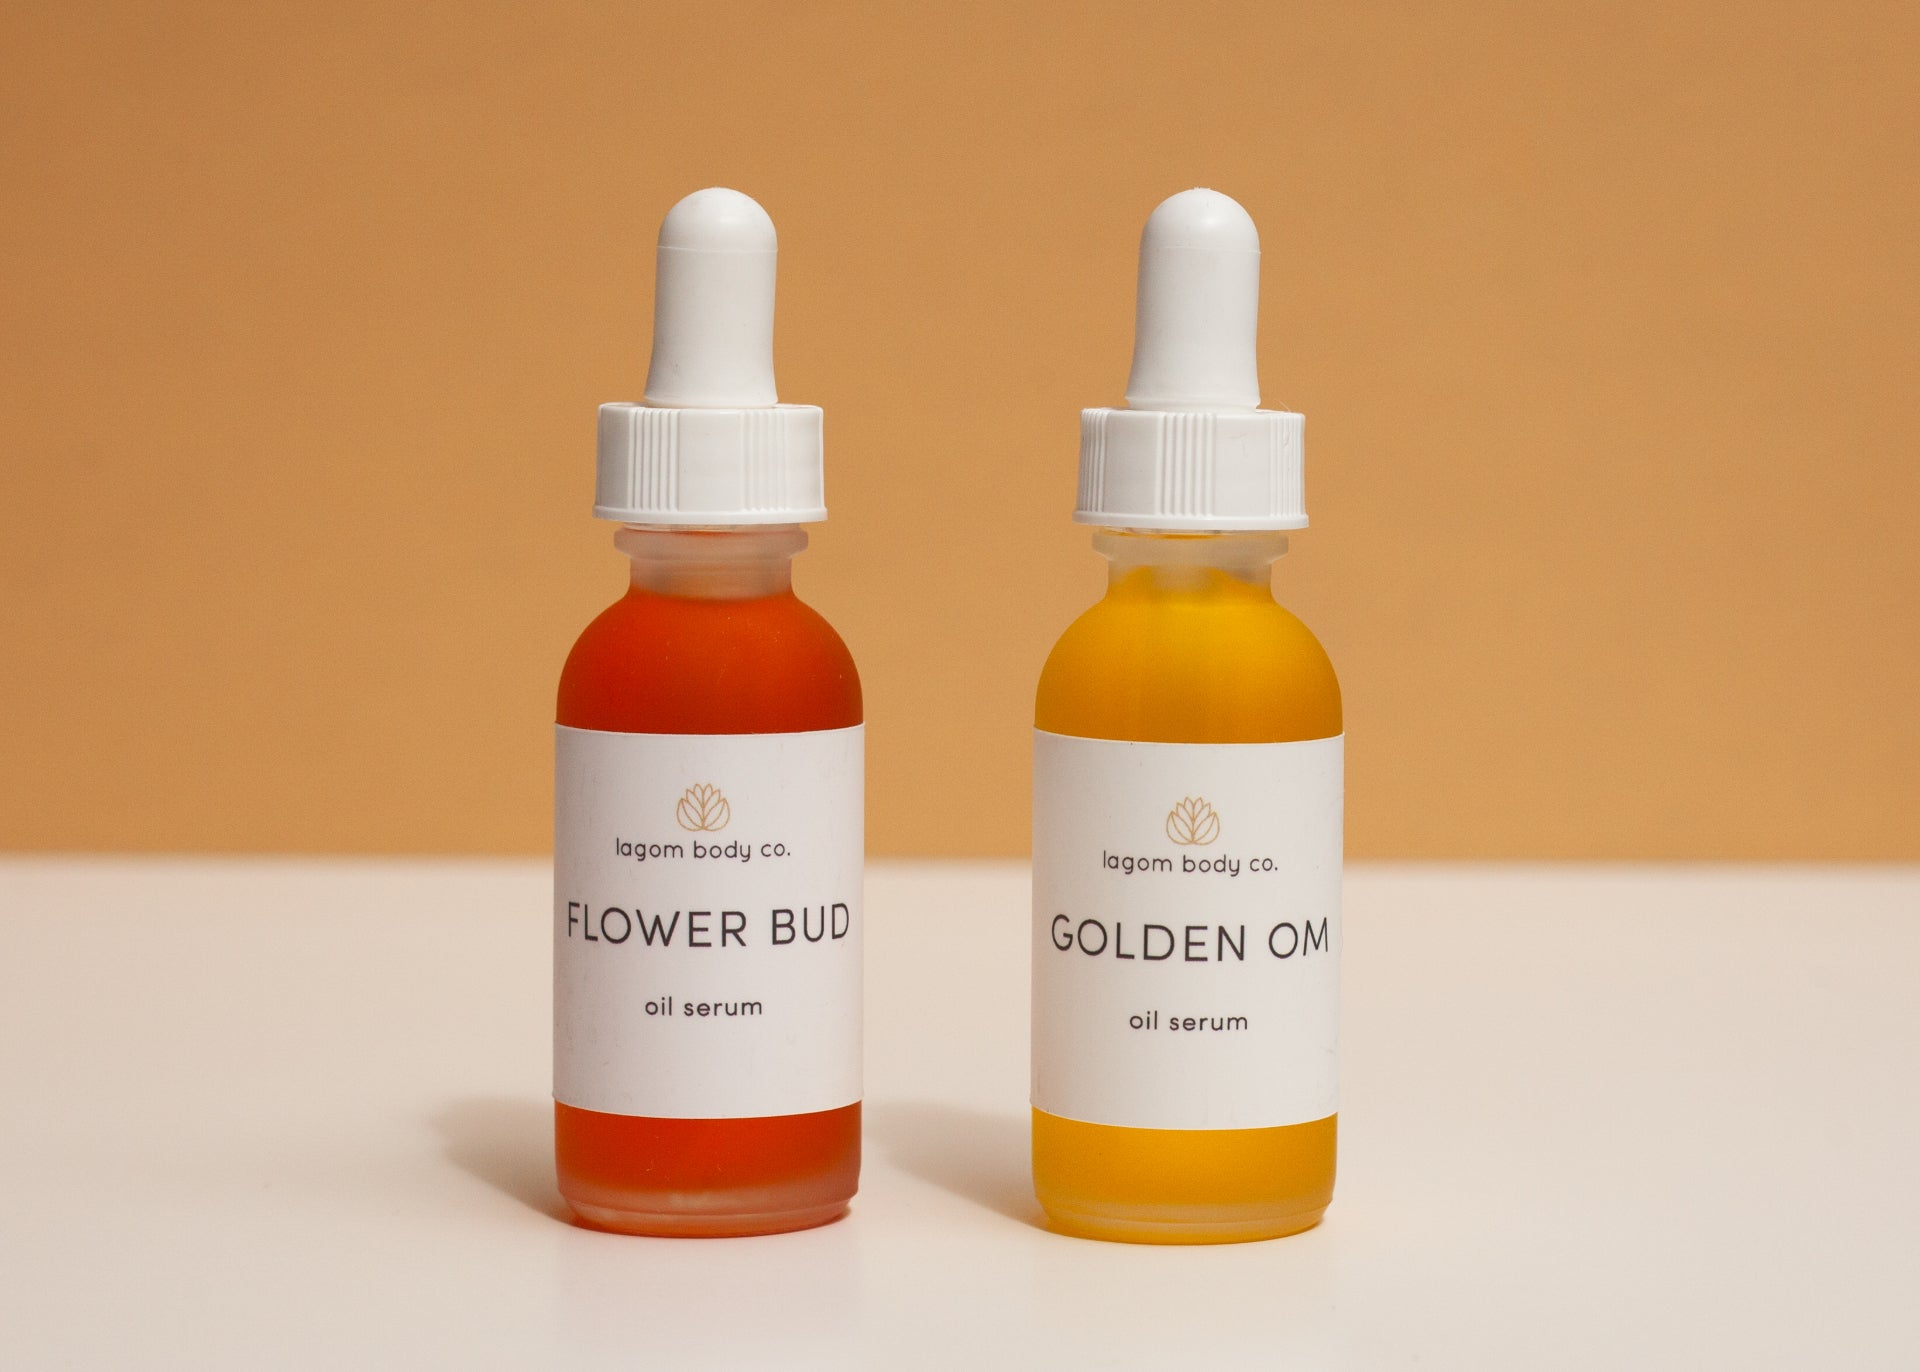 FLOWER BUD AND GOLDEN OM OIL SERUMS AGAINST GOLDEN BACKGROUND